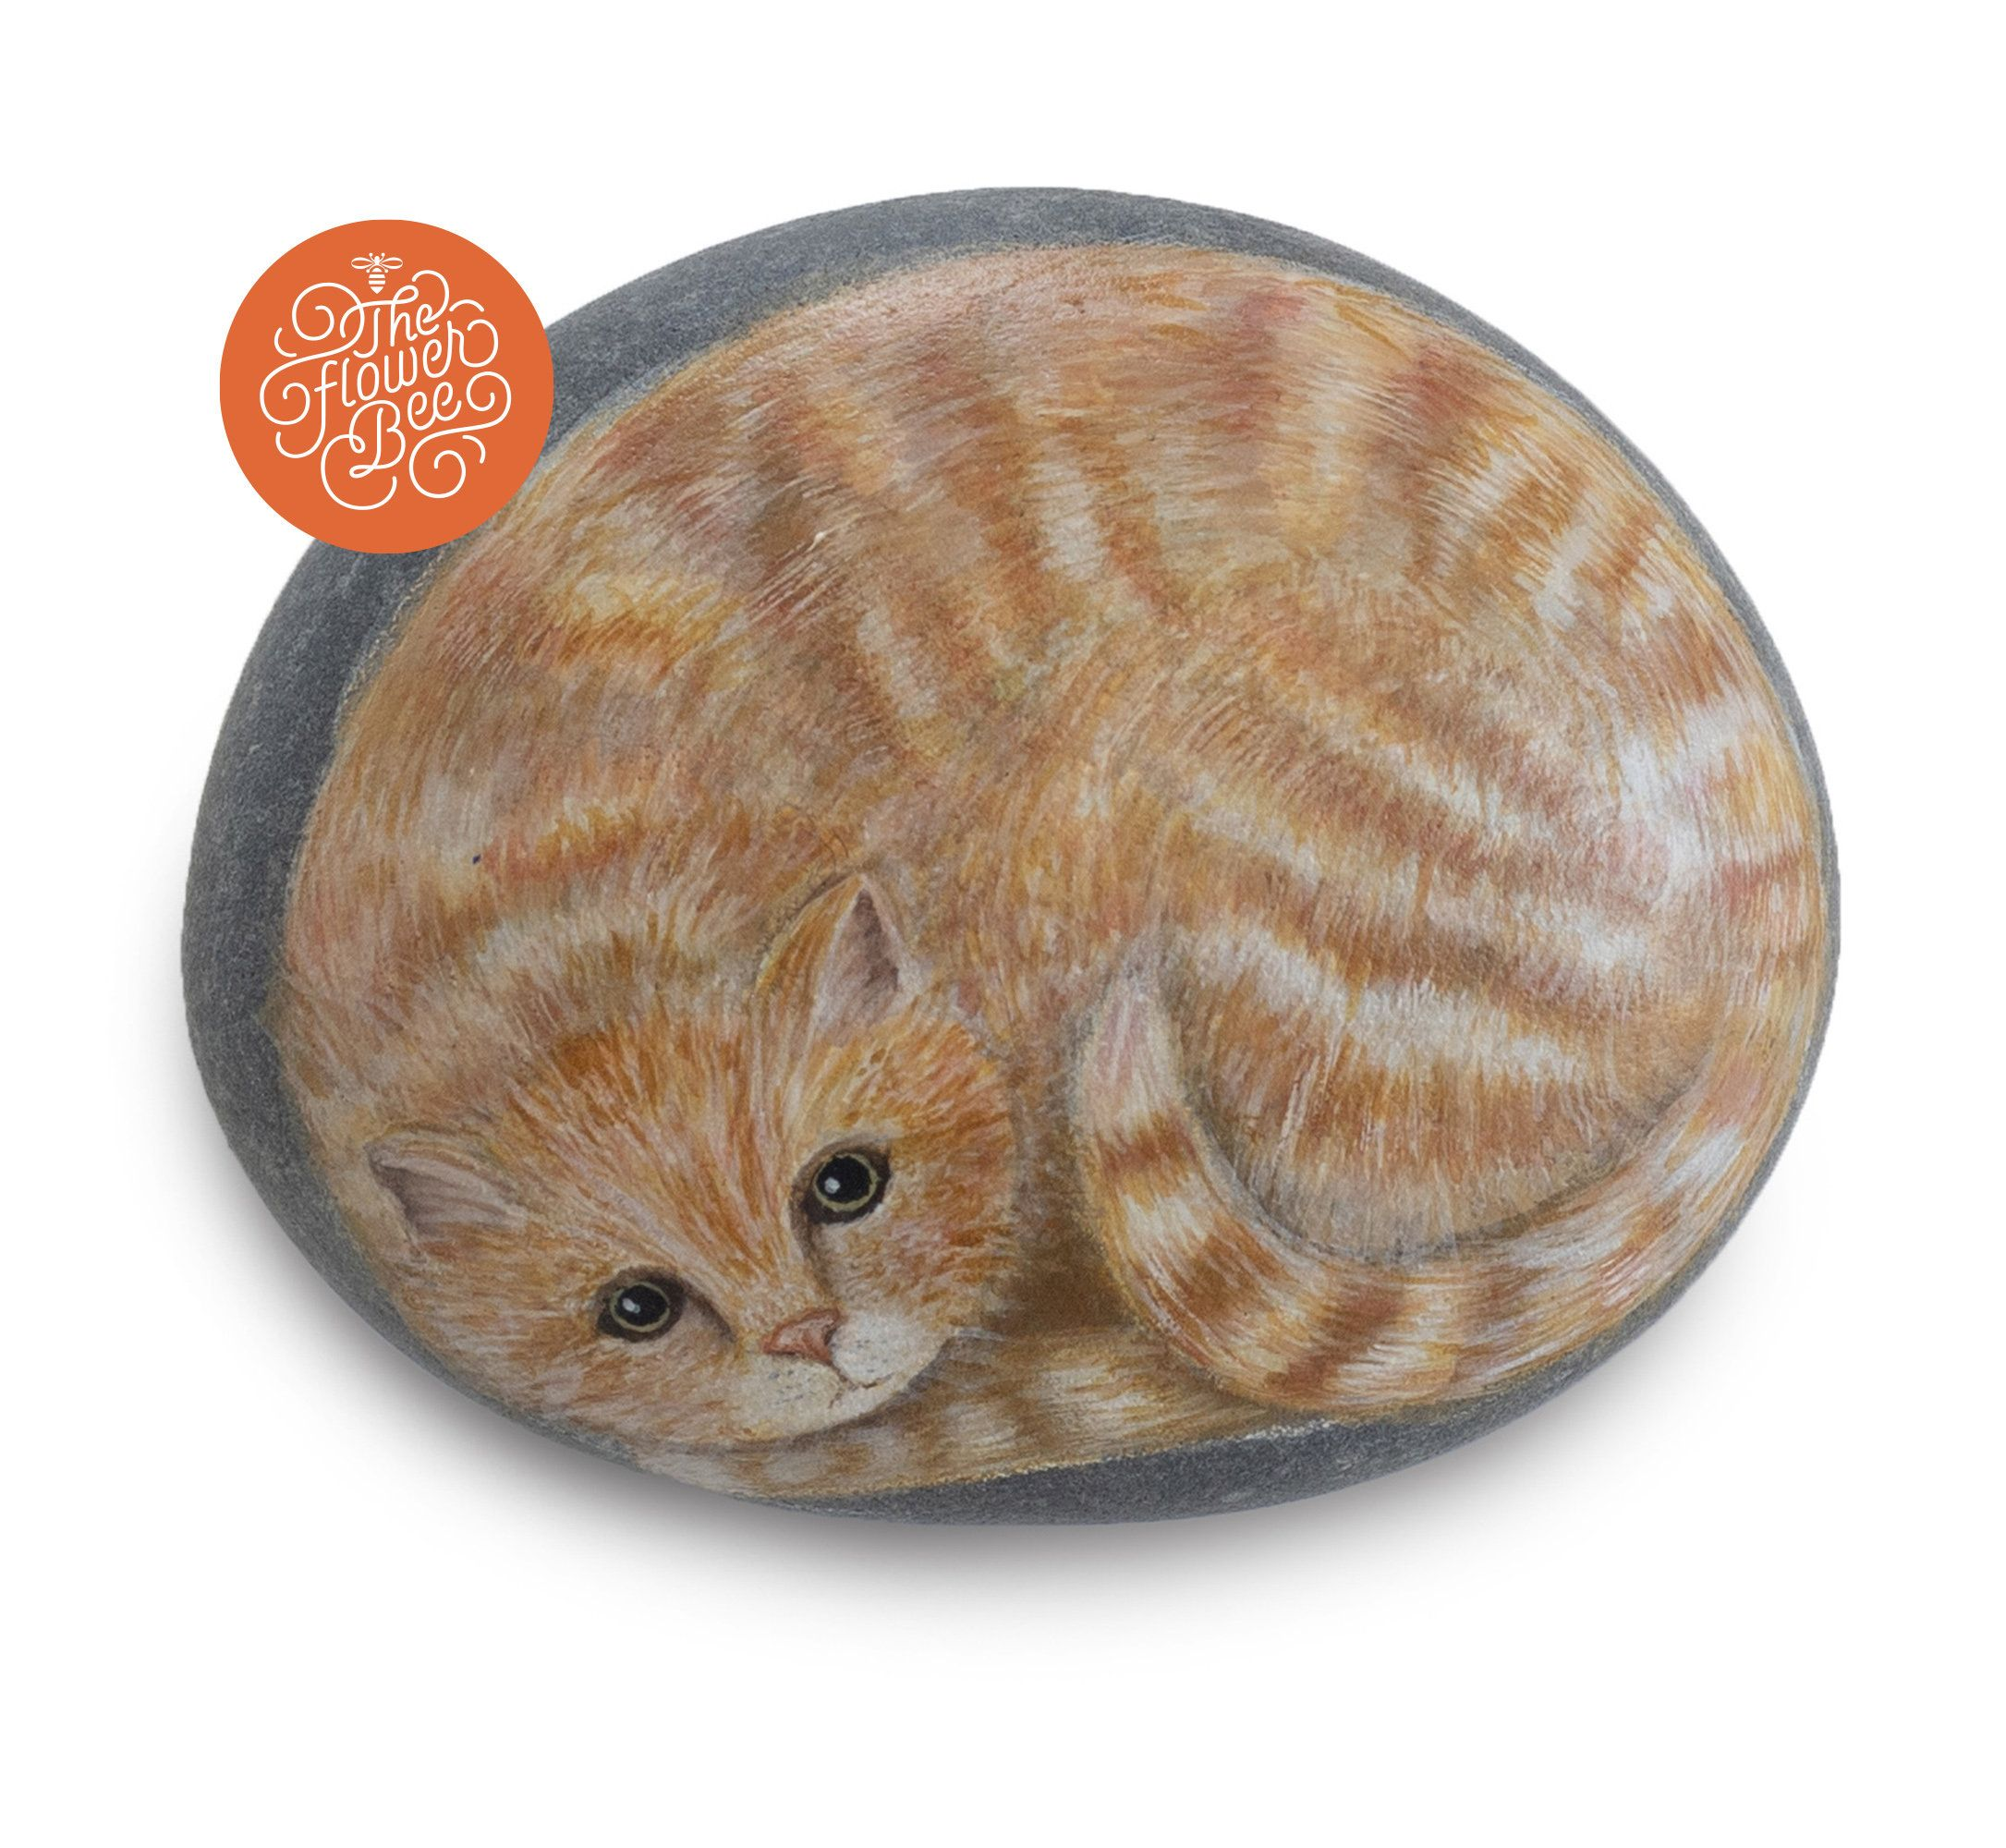 A Ginger Kitten Painted on a Smooth Stone. Rock Painting Art by Dianne Kleinschmidt-de Villiers | Animal Rock Painting Collection